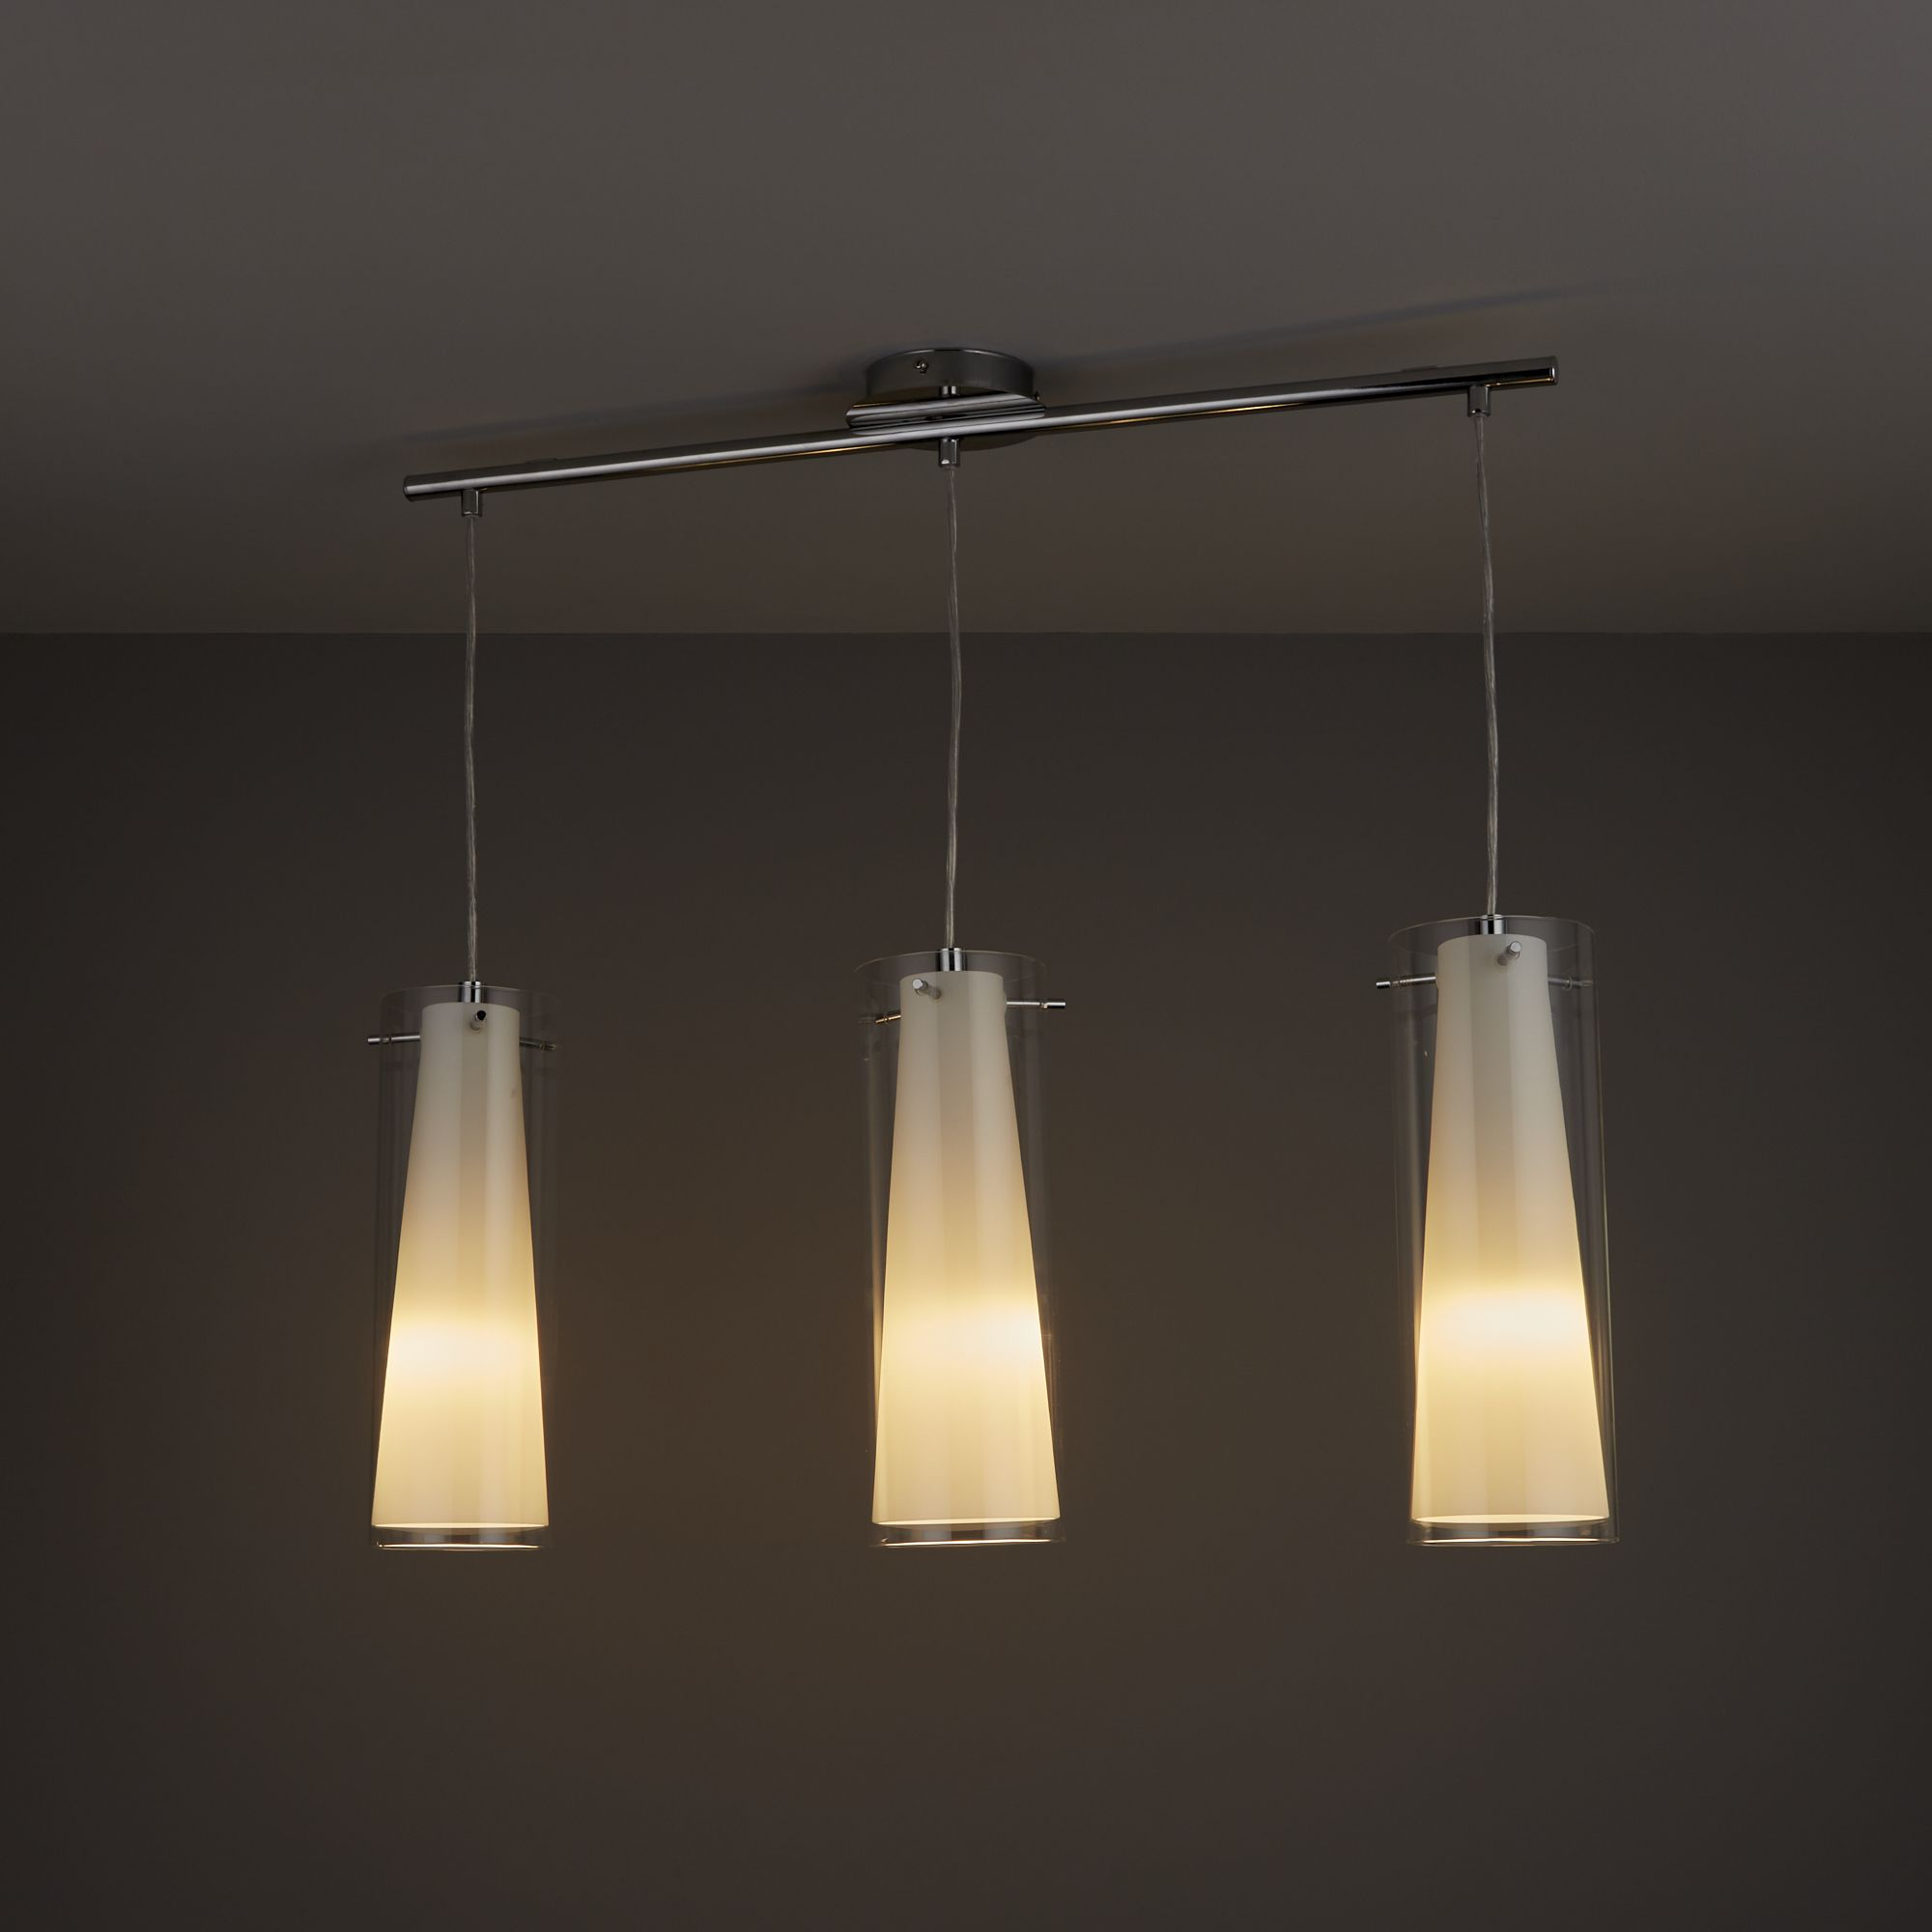 multi pendant jonathan pendants lighting modern capri image category alt adler w by lights light